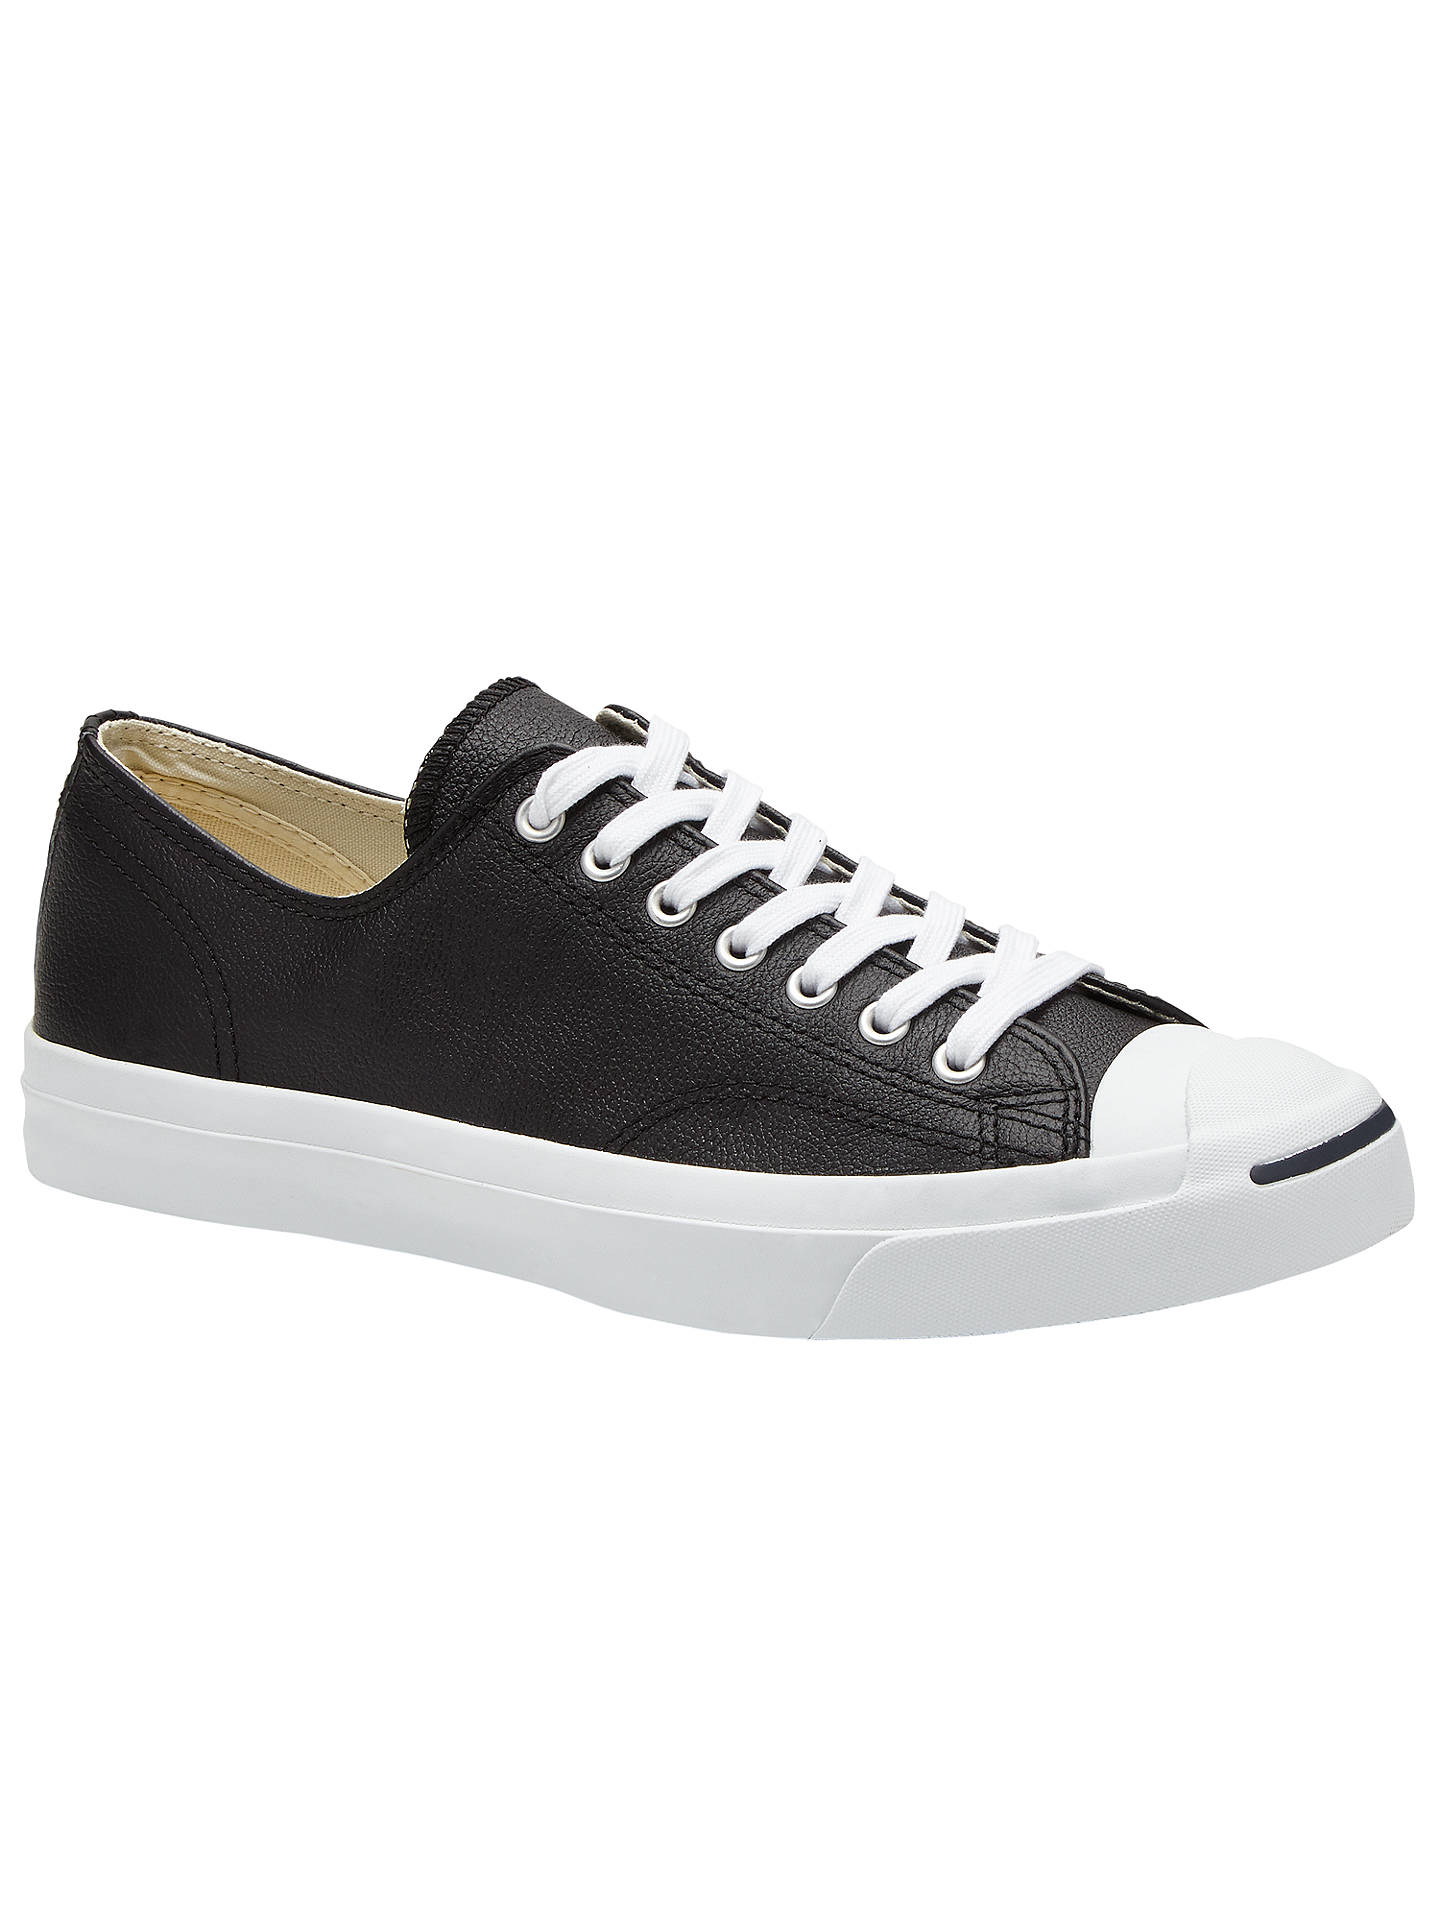 d09dc35e4215 Converse Jack Purcell Lace-Up Leather Trainers at John Lewis   Partners